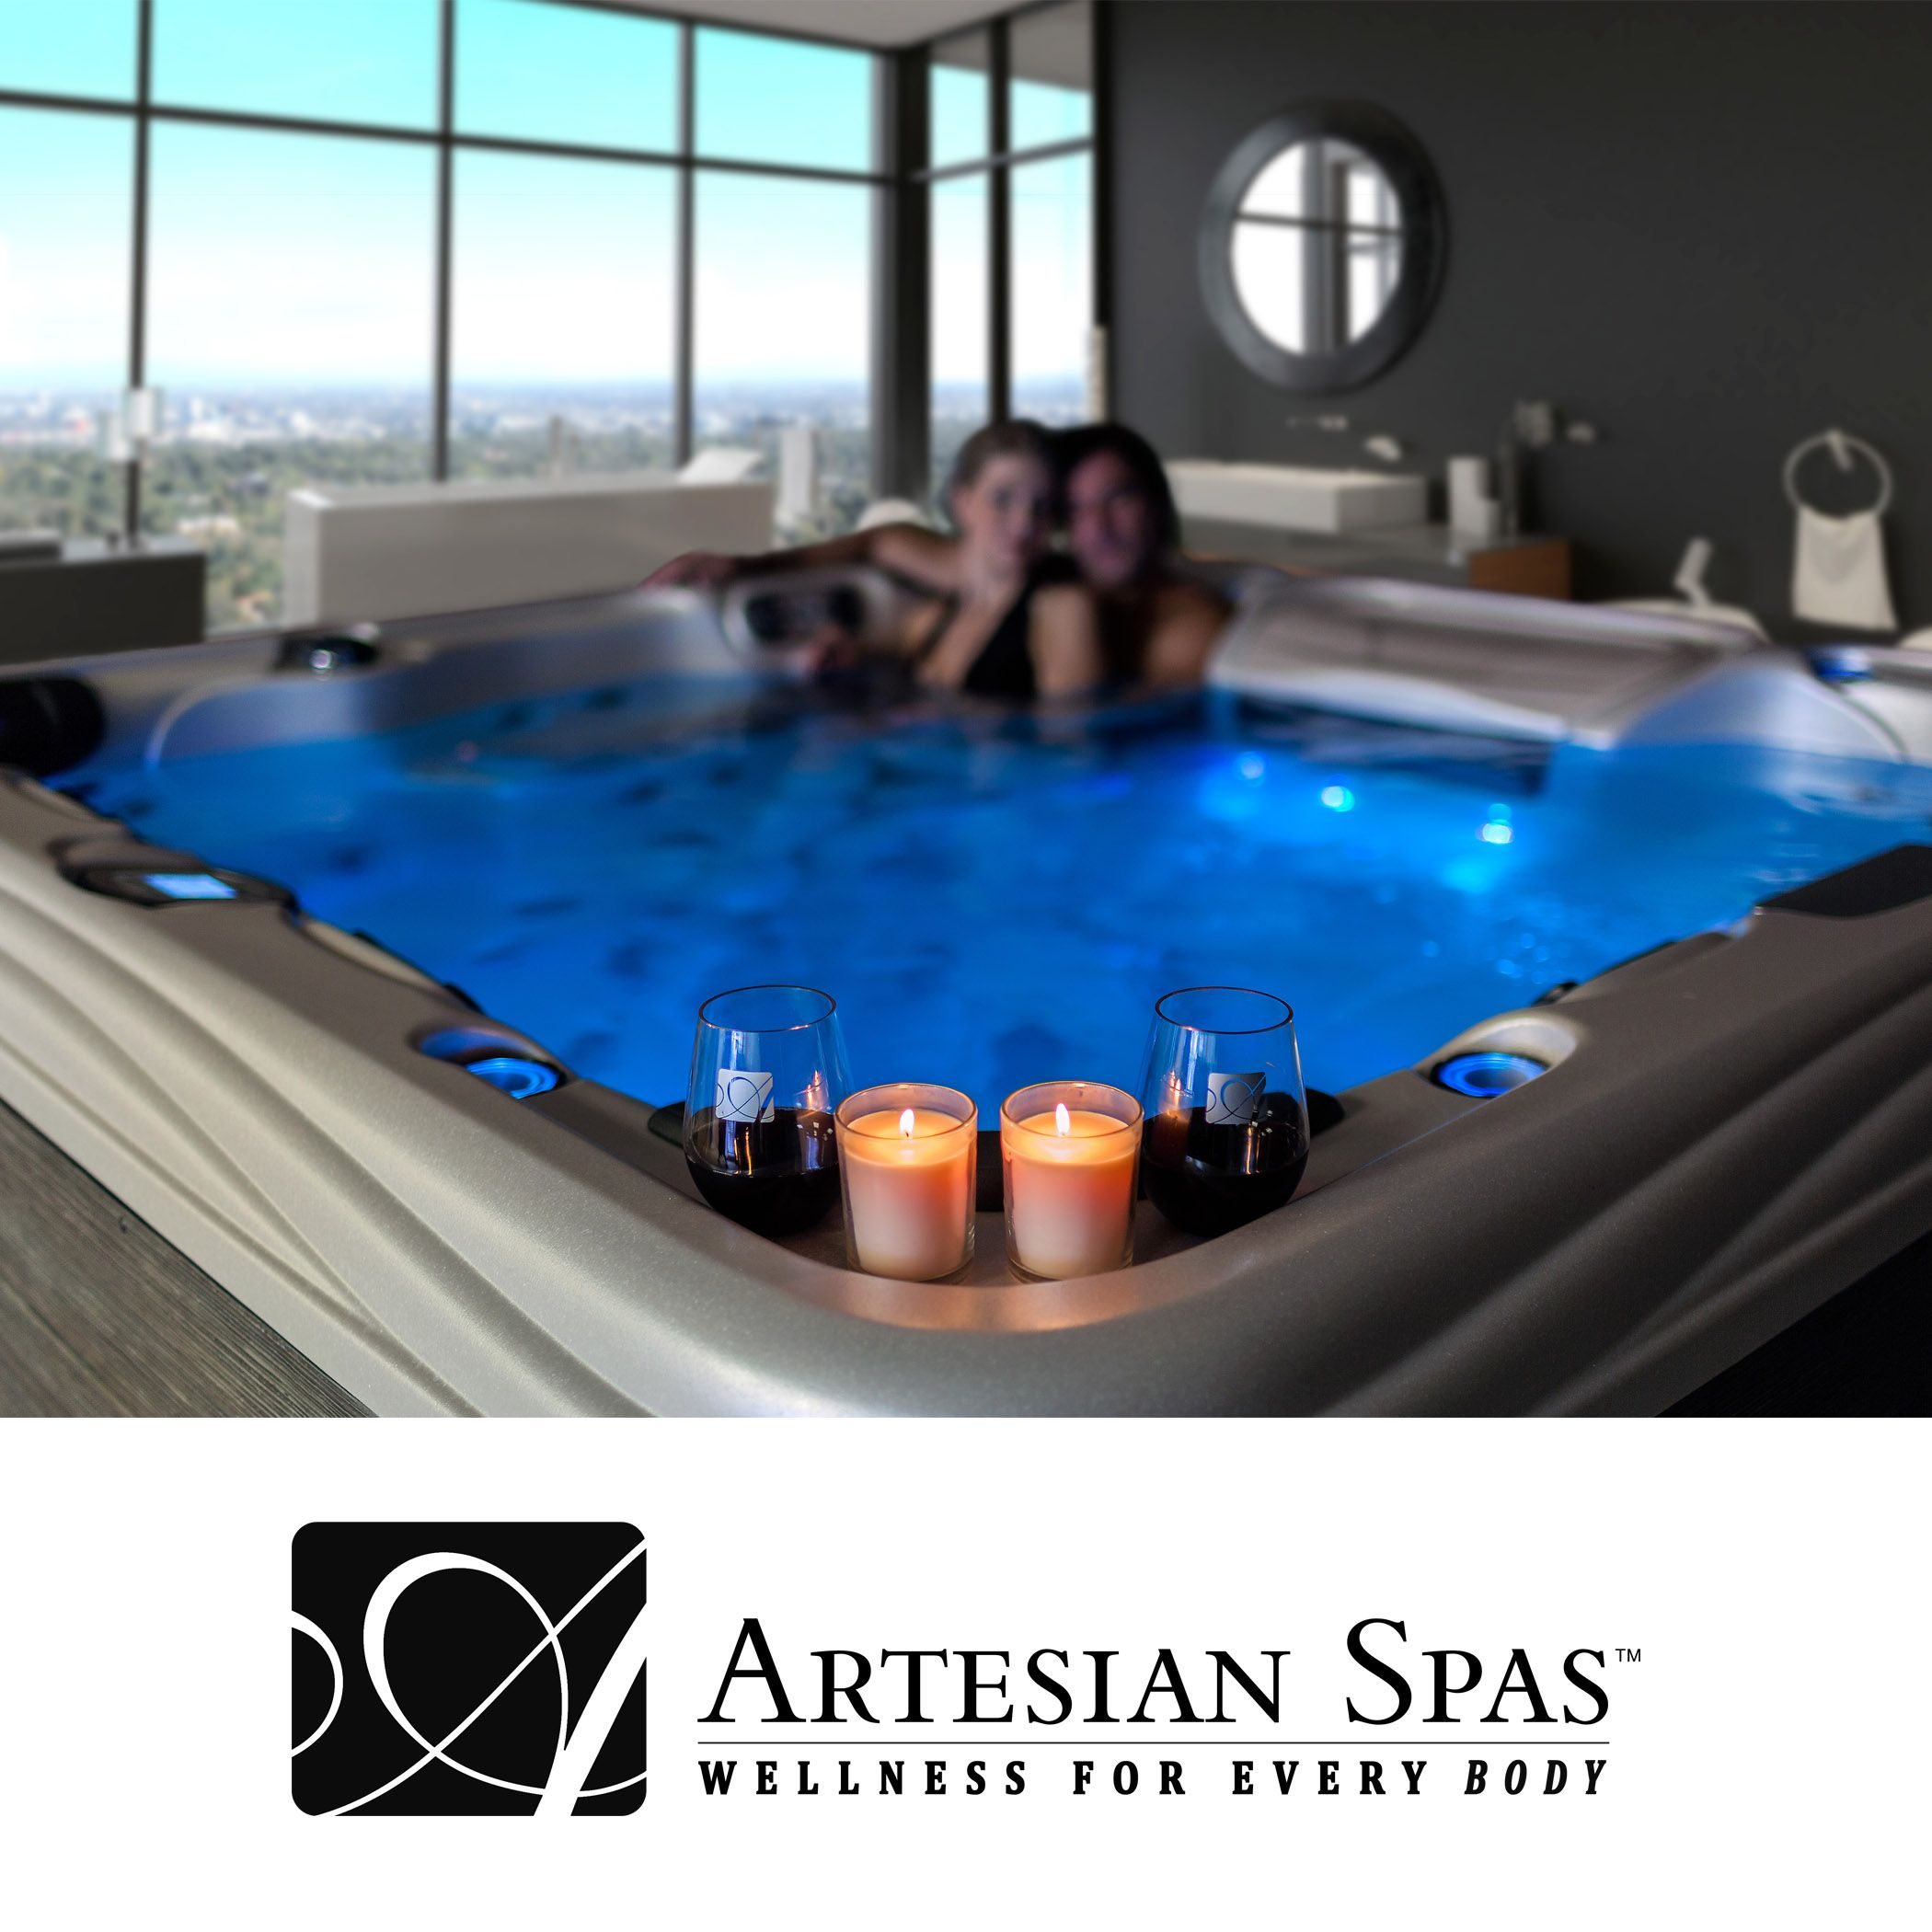 Platinum Elite Hot Tub by Artesian Spas http://artesianspas.com ...